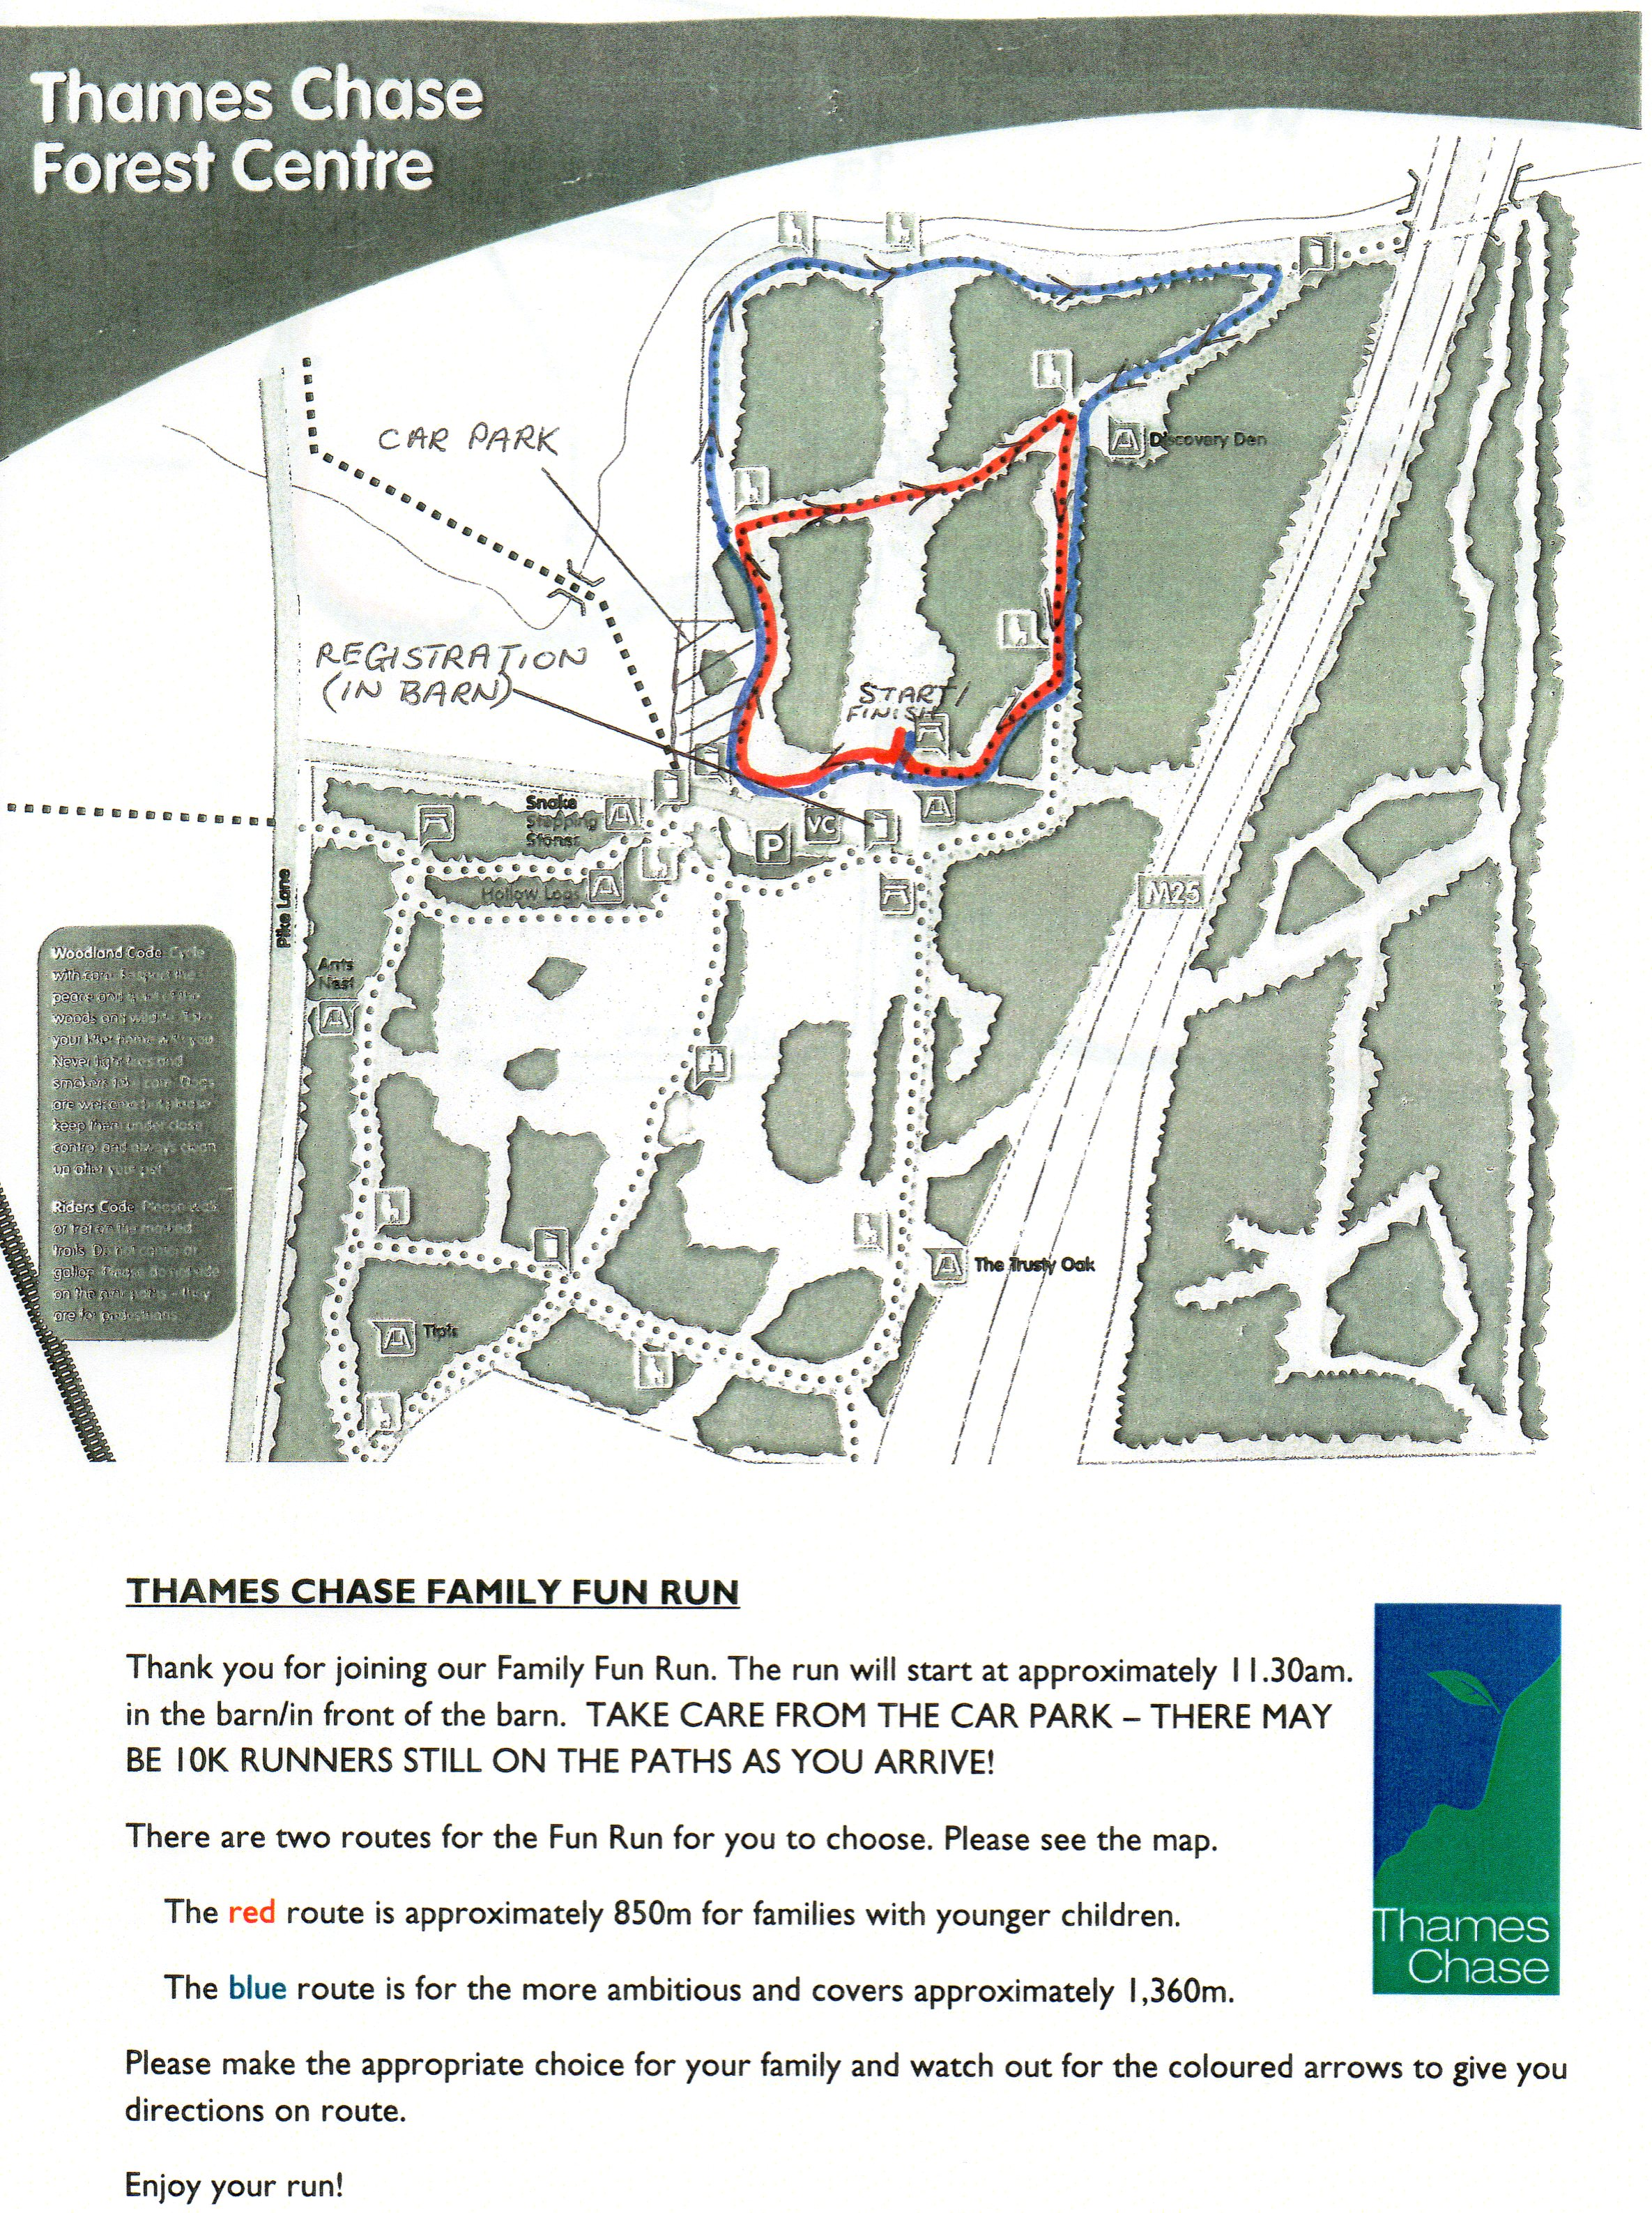 Thames Chase Community Forests annual 10K and Family fun run